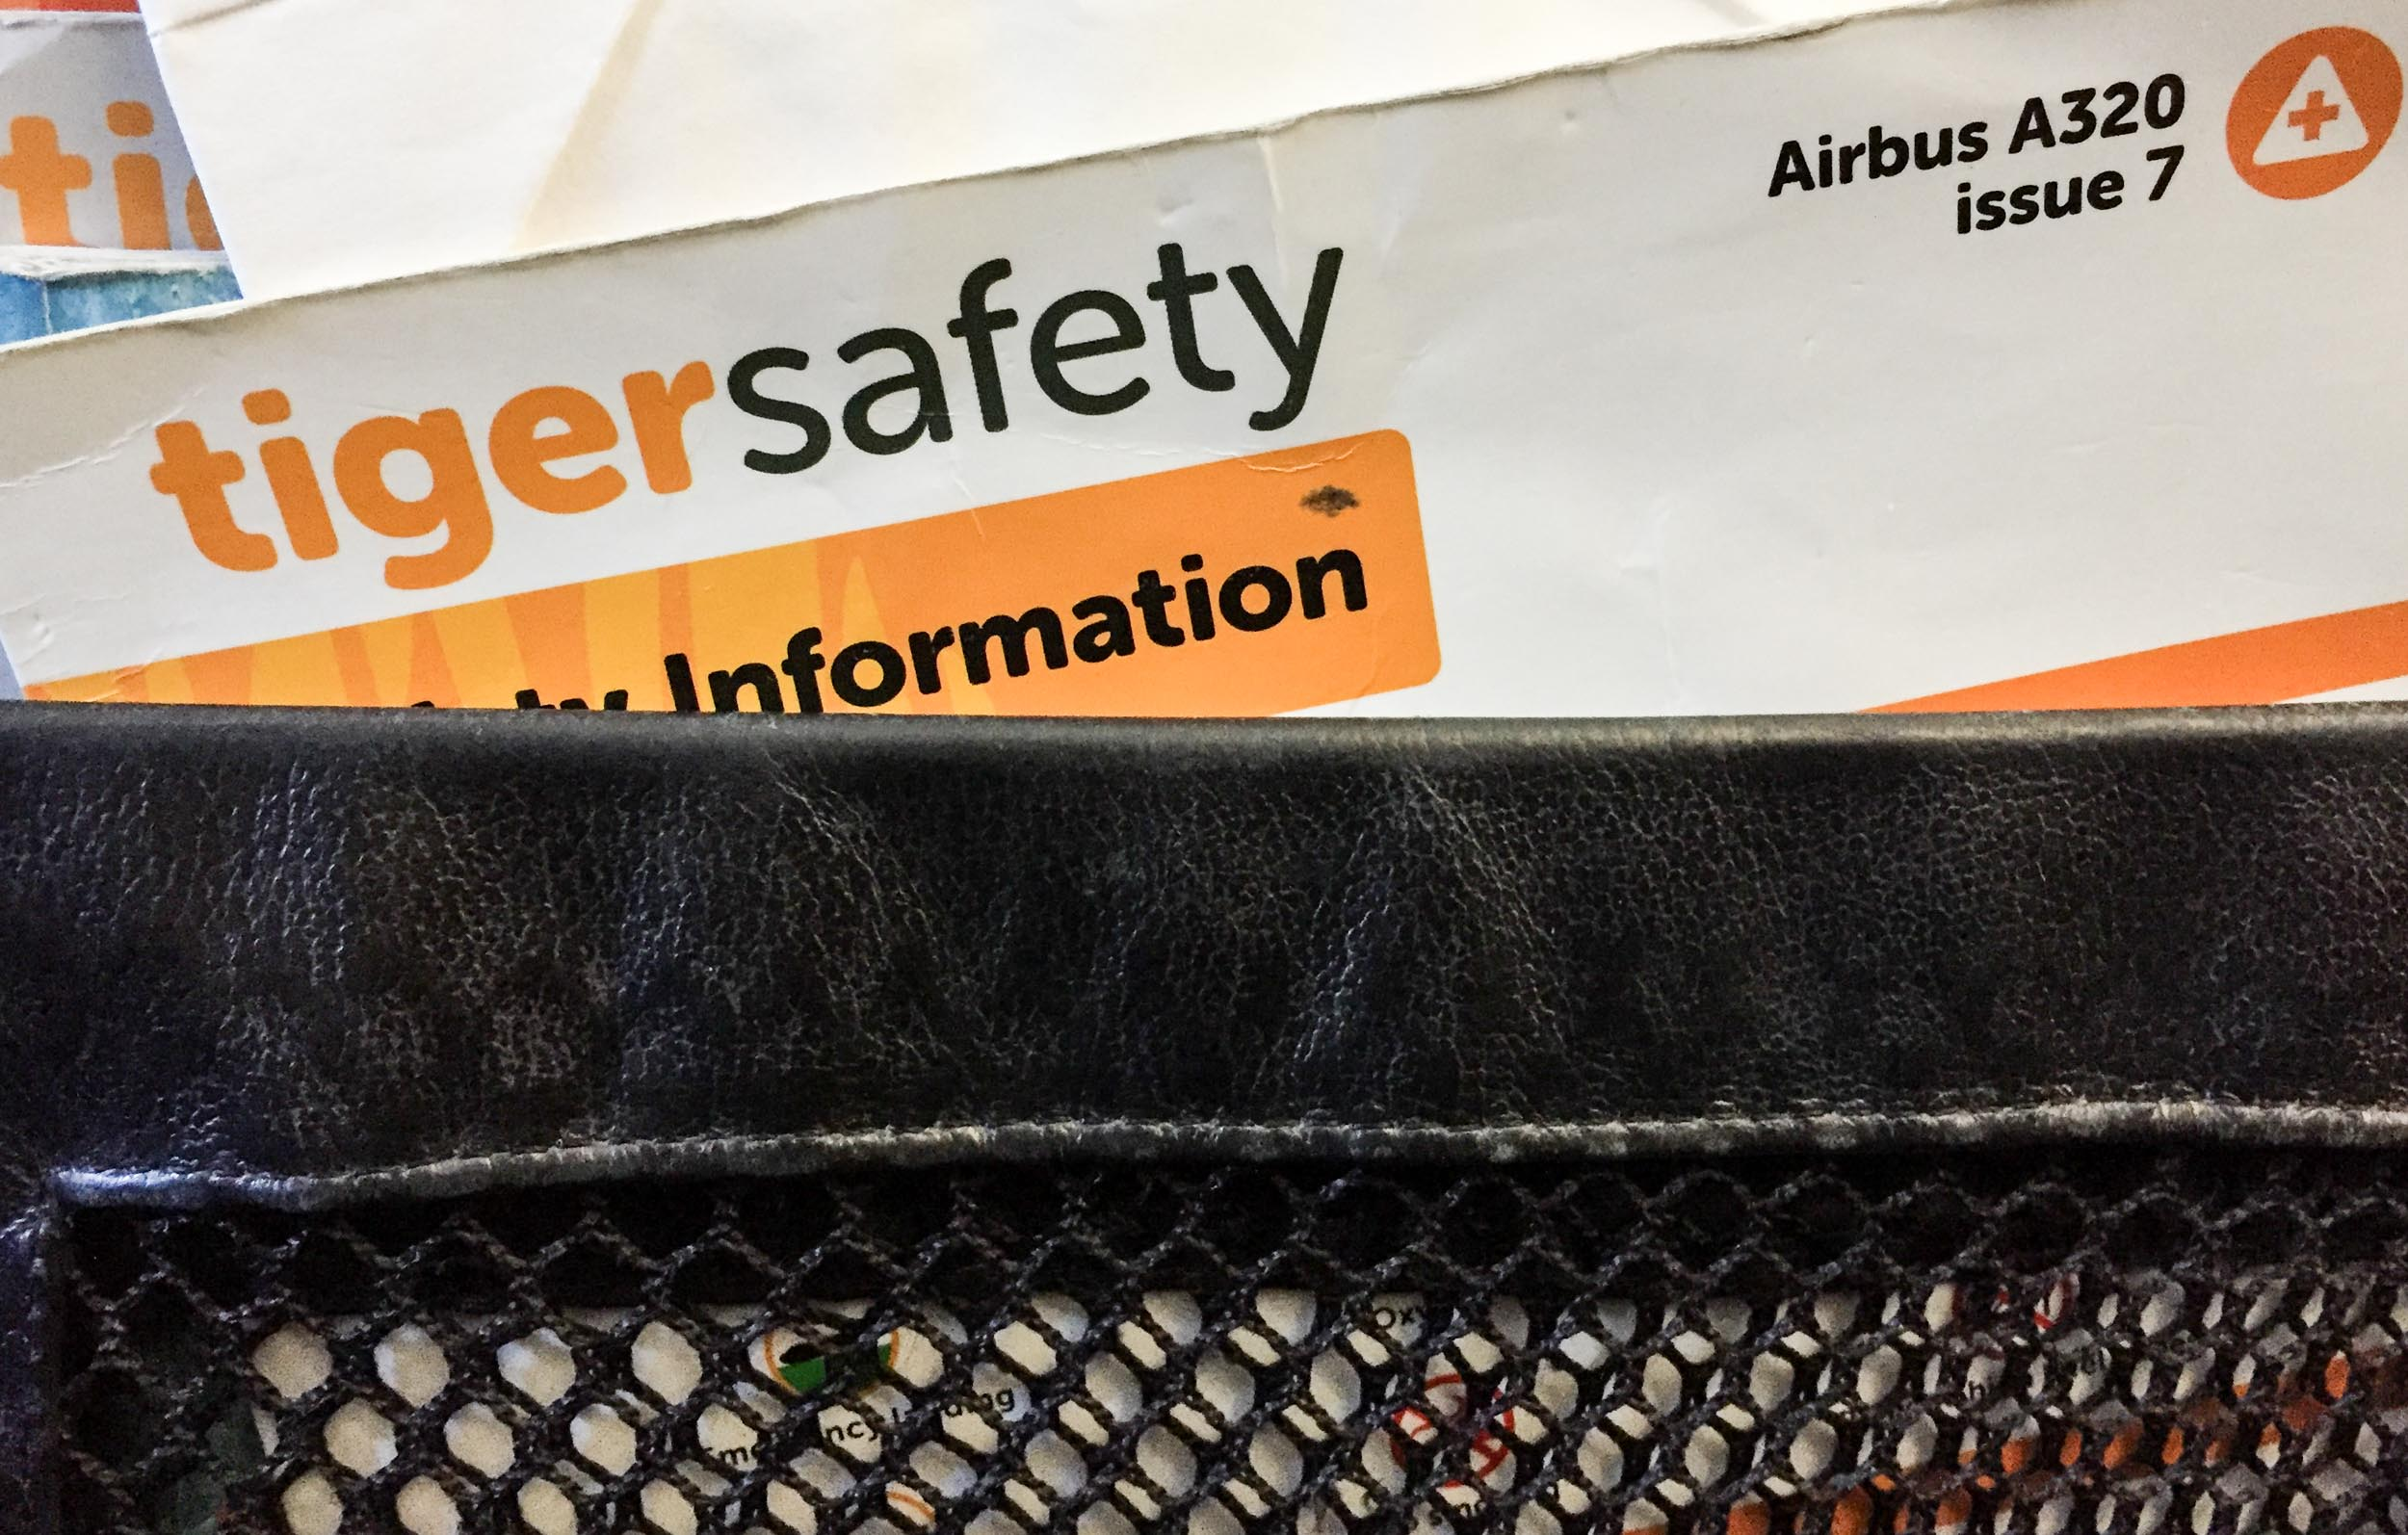 Tiger safety??!!  Surely this should have been issued in the jungles of Sumatra!